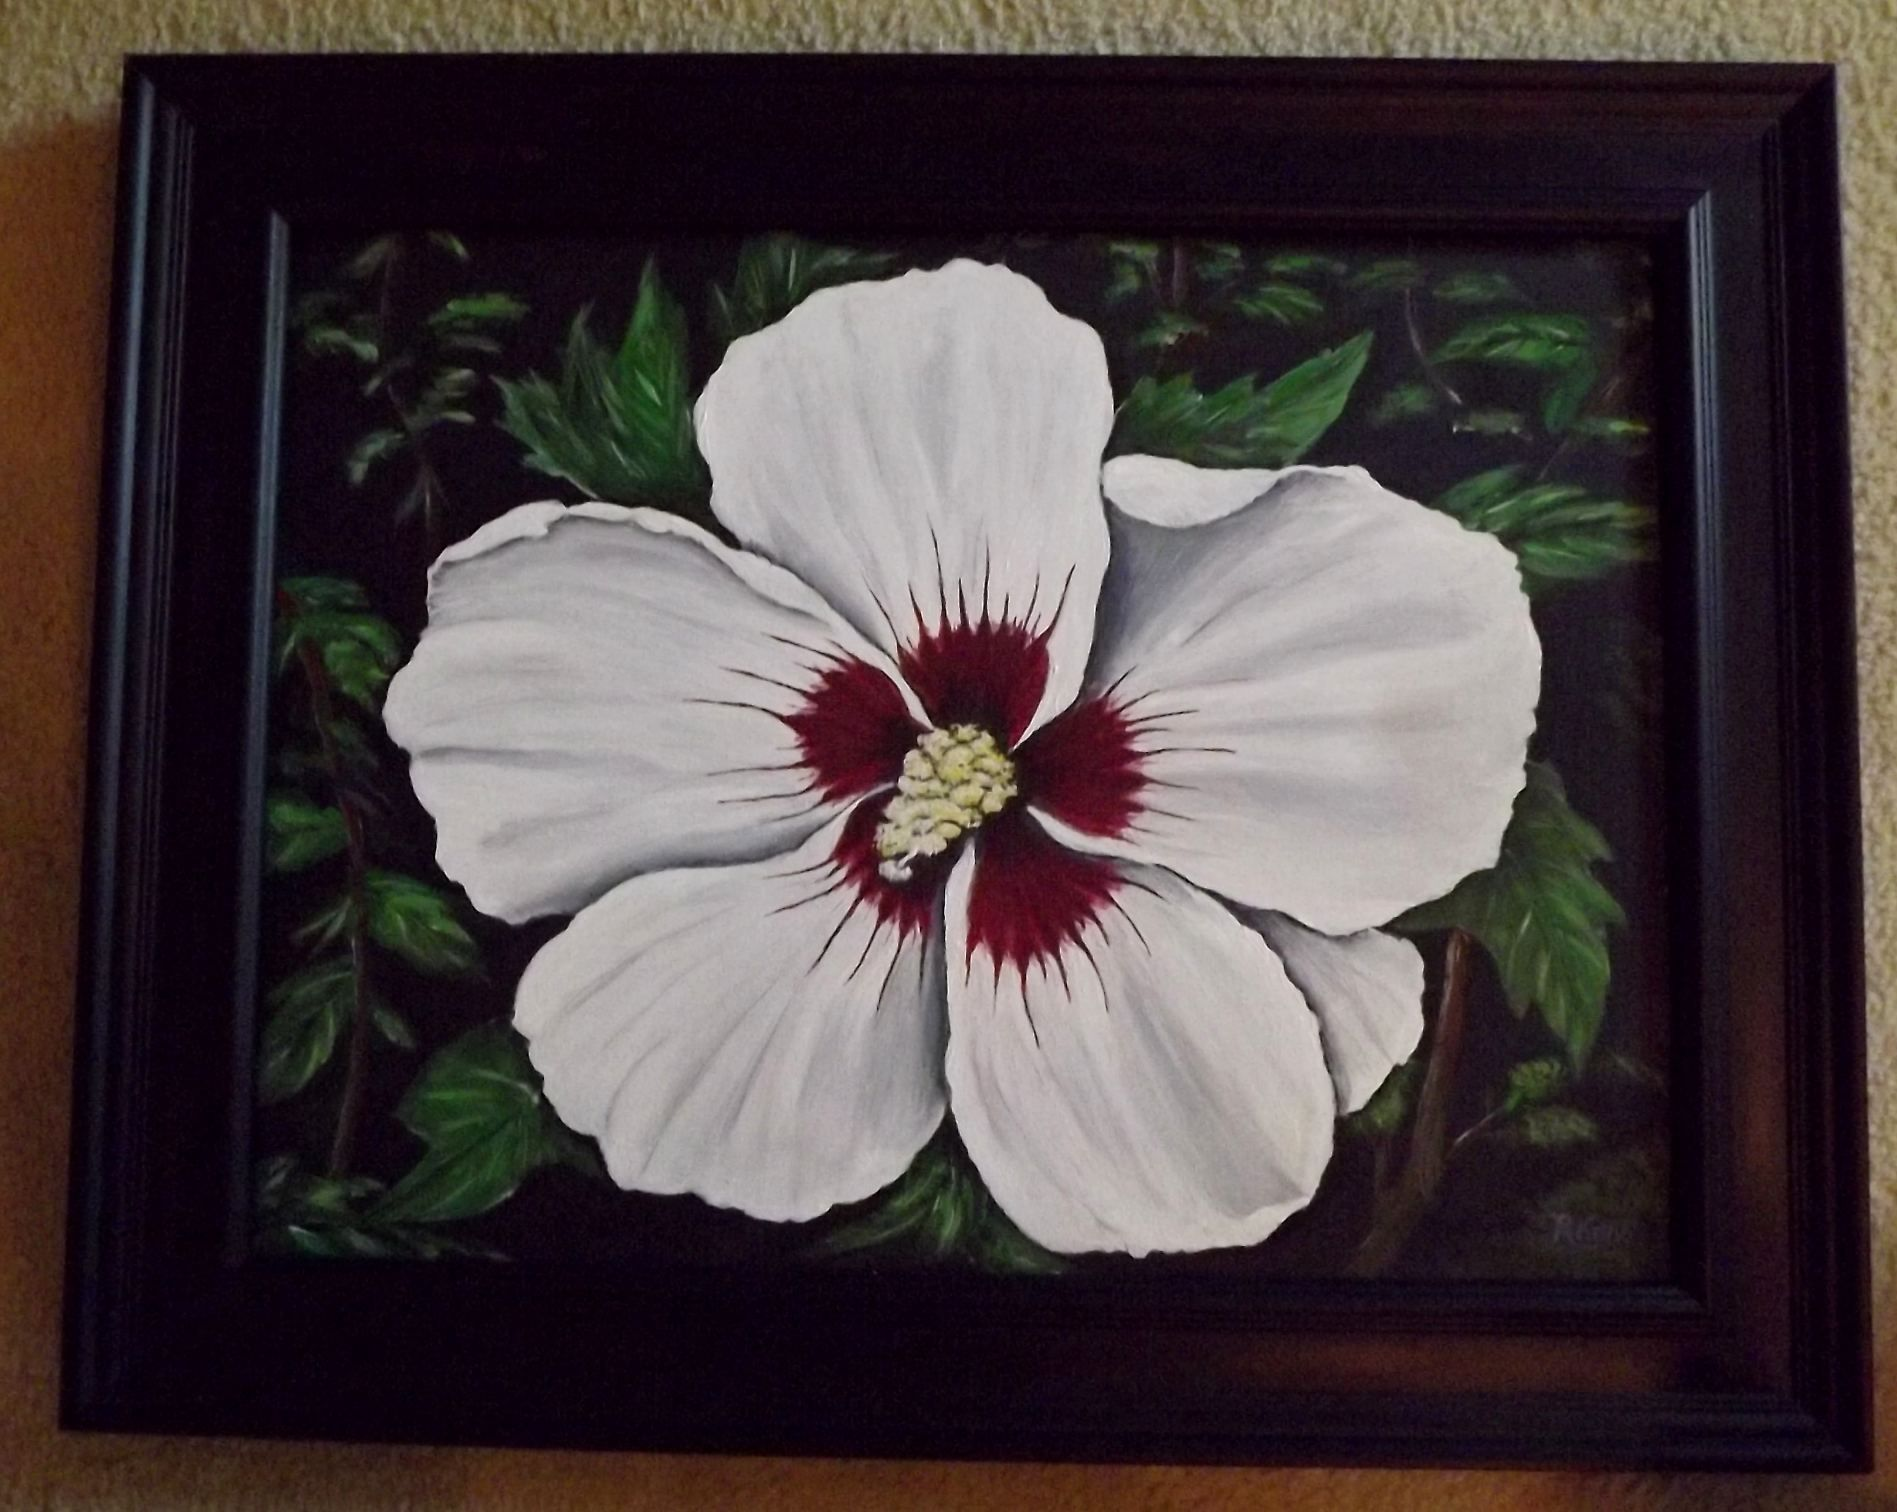 Rose of Sharon by Robert Kelly | Art, Rose of sharon, Painting